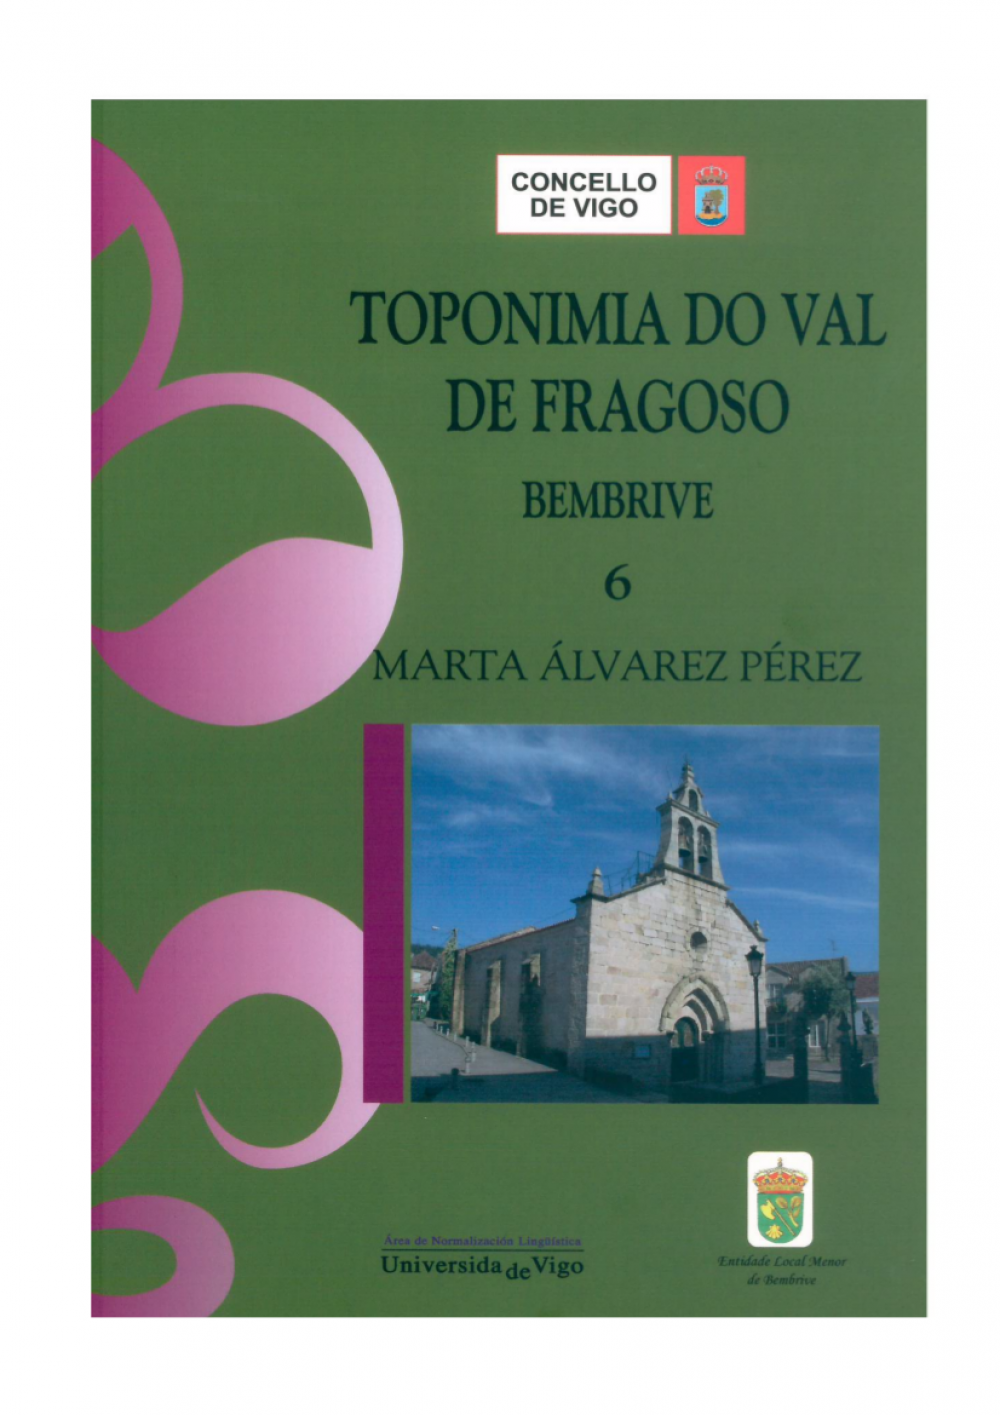 Toponimia do Val do Fragoso. Bembrive